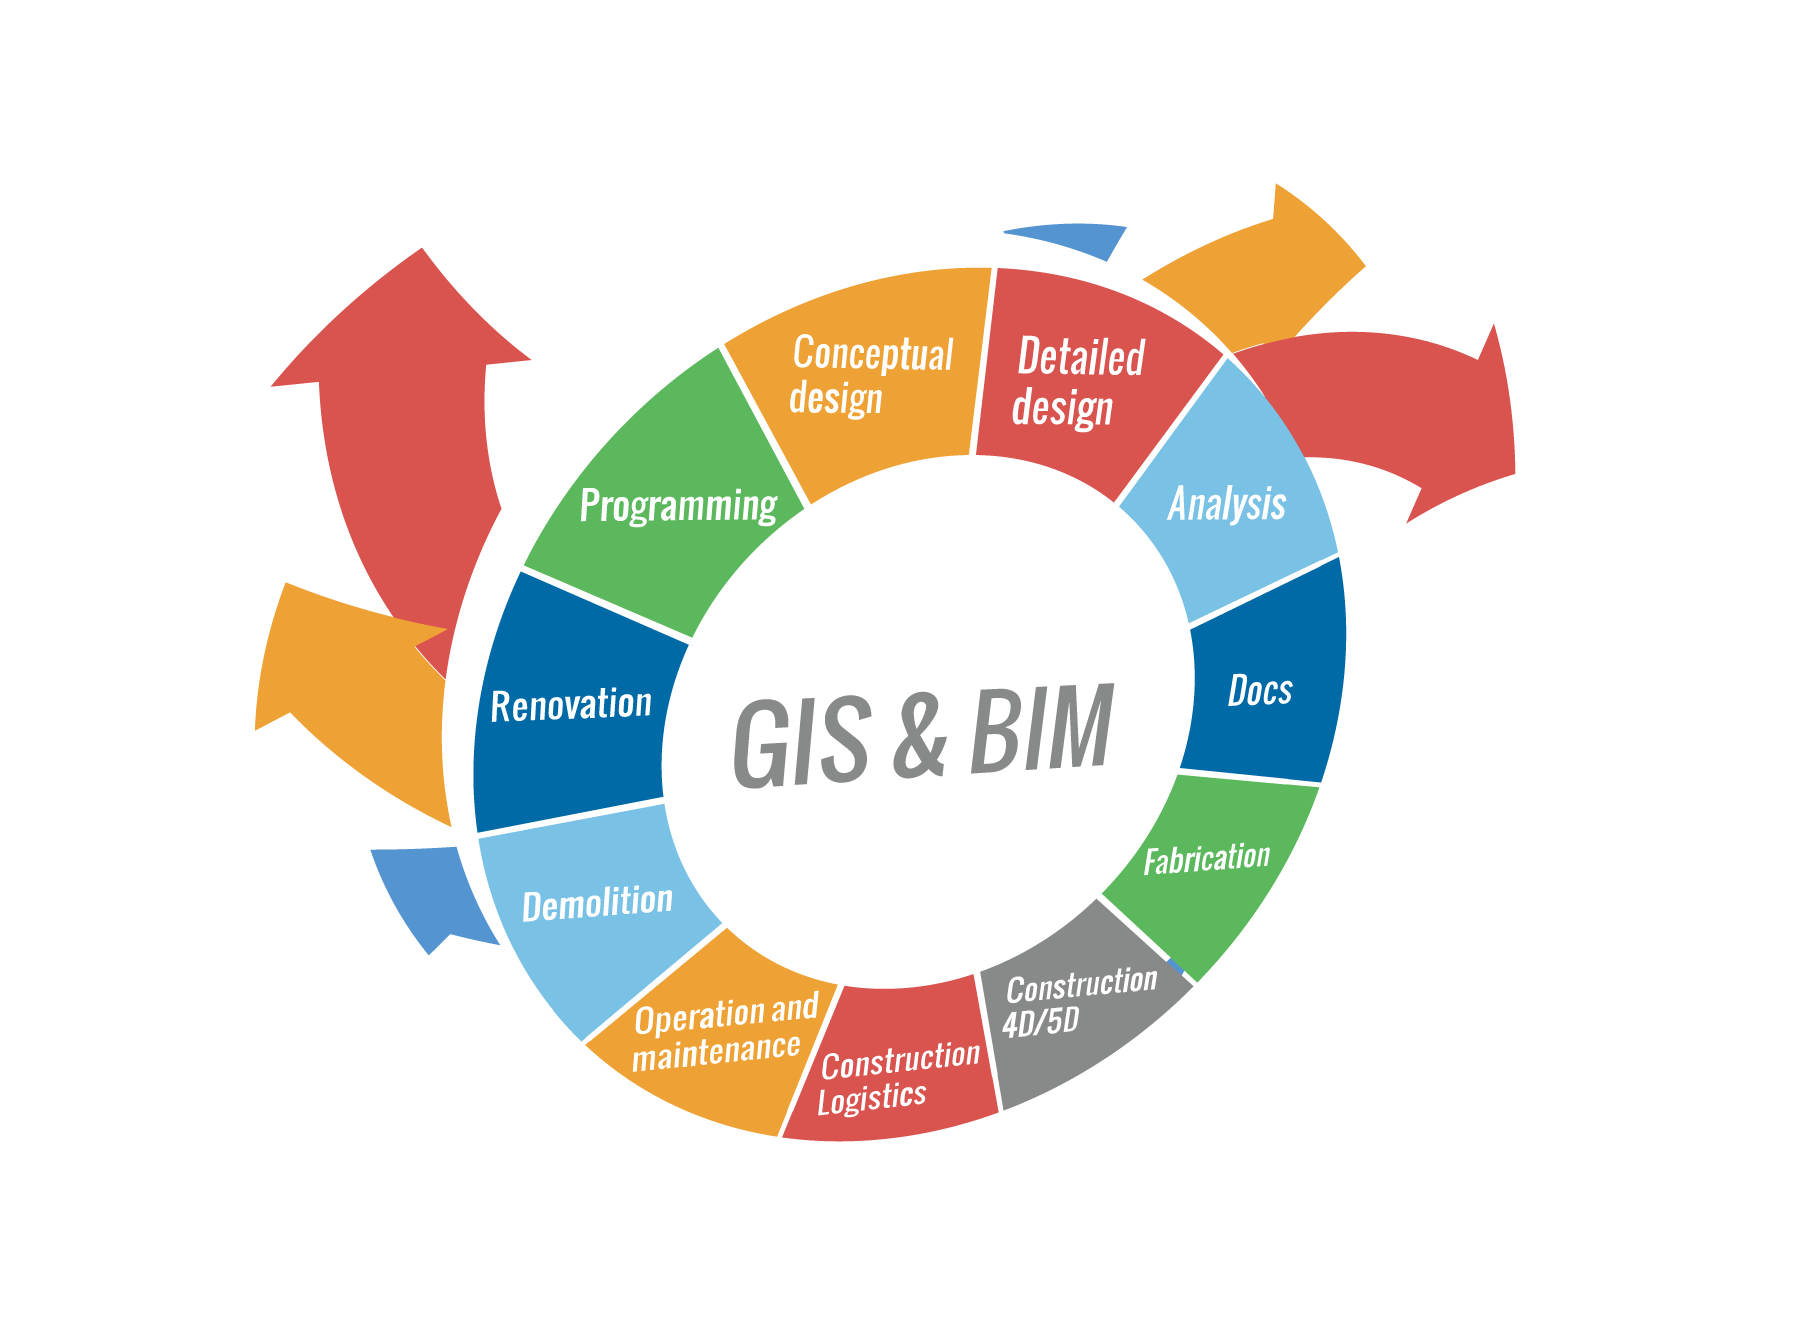 openMAINT - #GIS & #BIM Discover how useful #geotags are for the